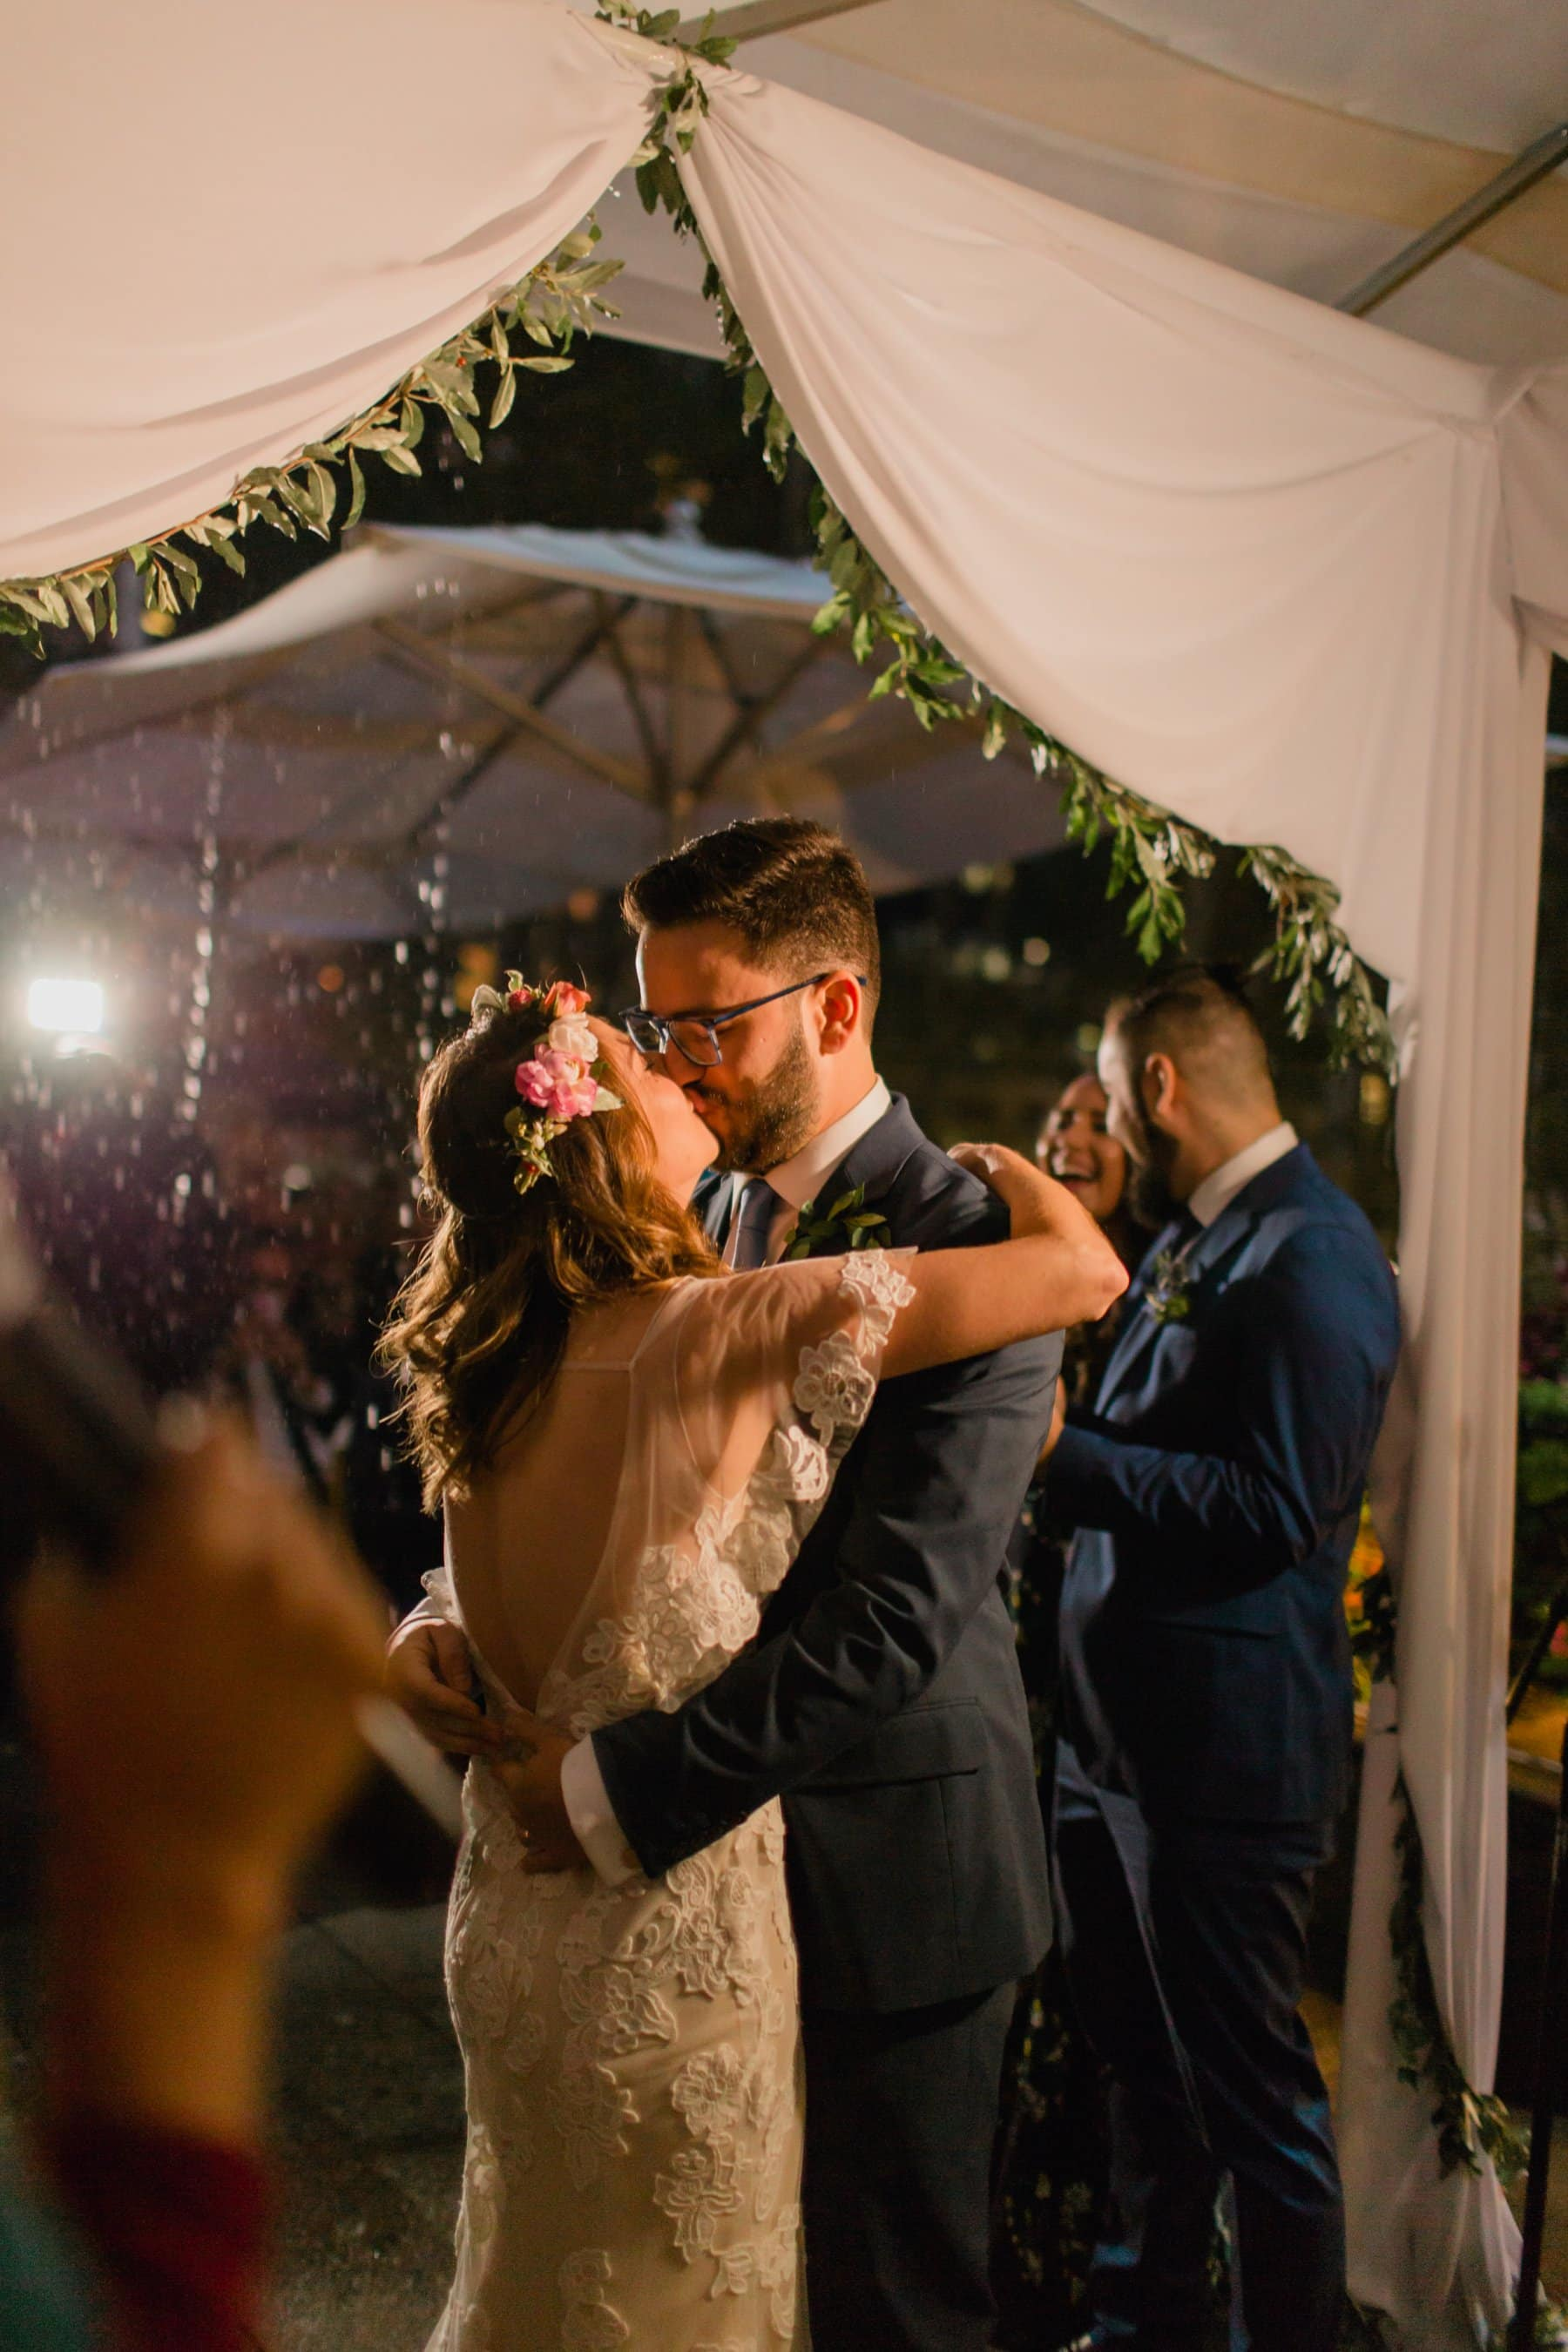 first kiss in the rain at night New York Bryant Park wedding